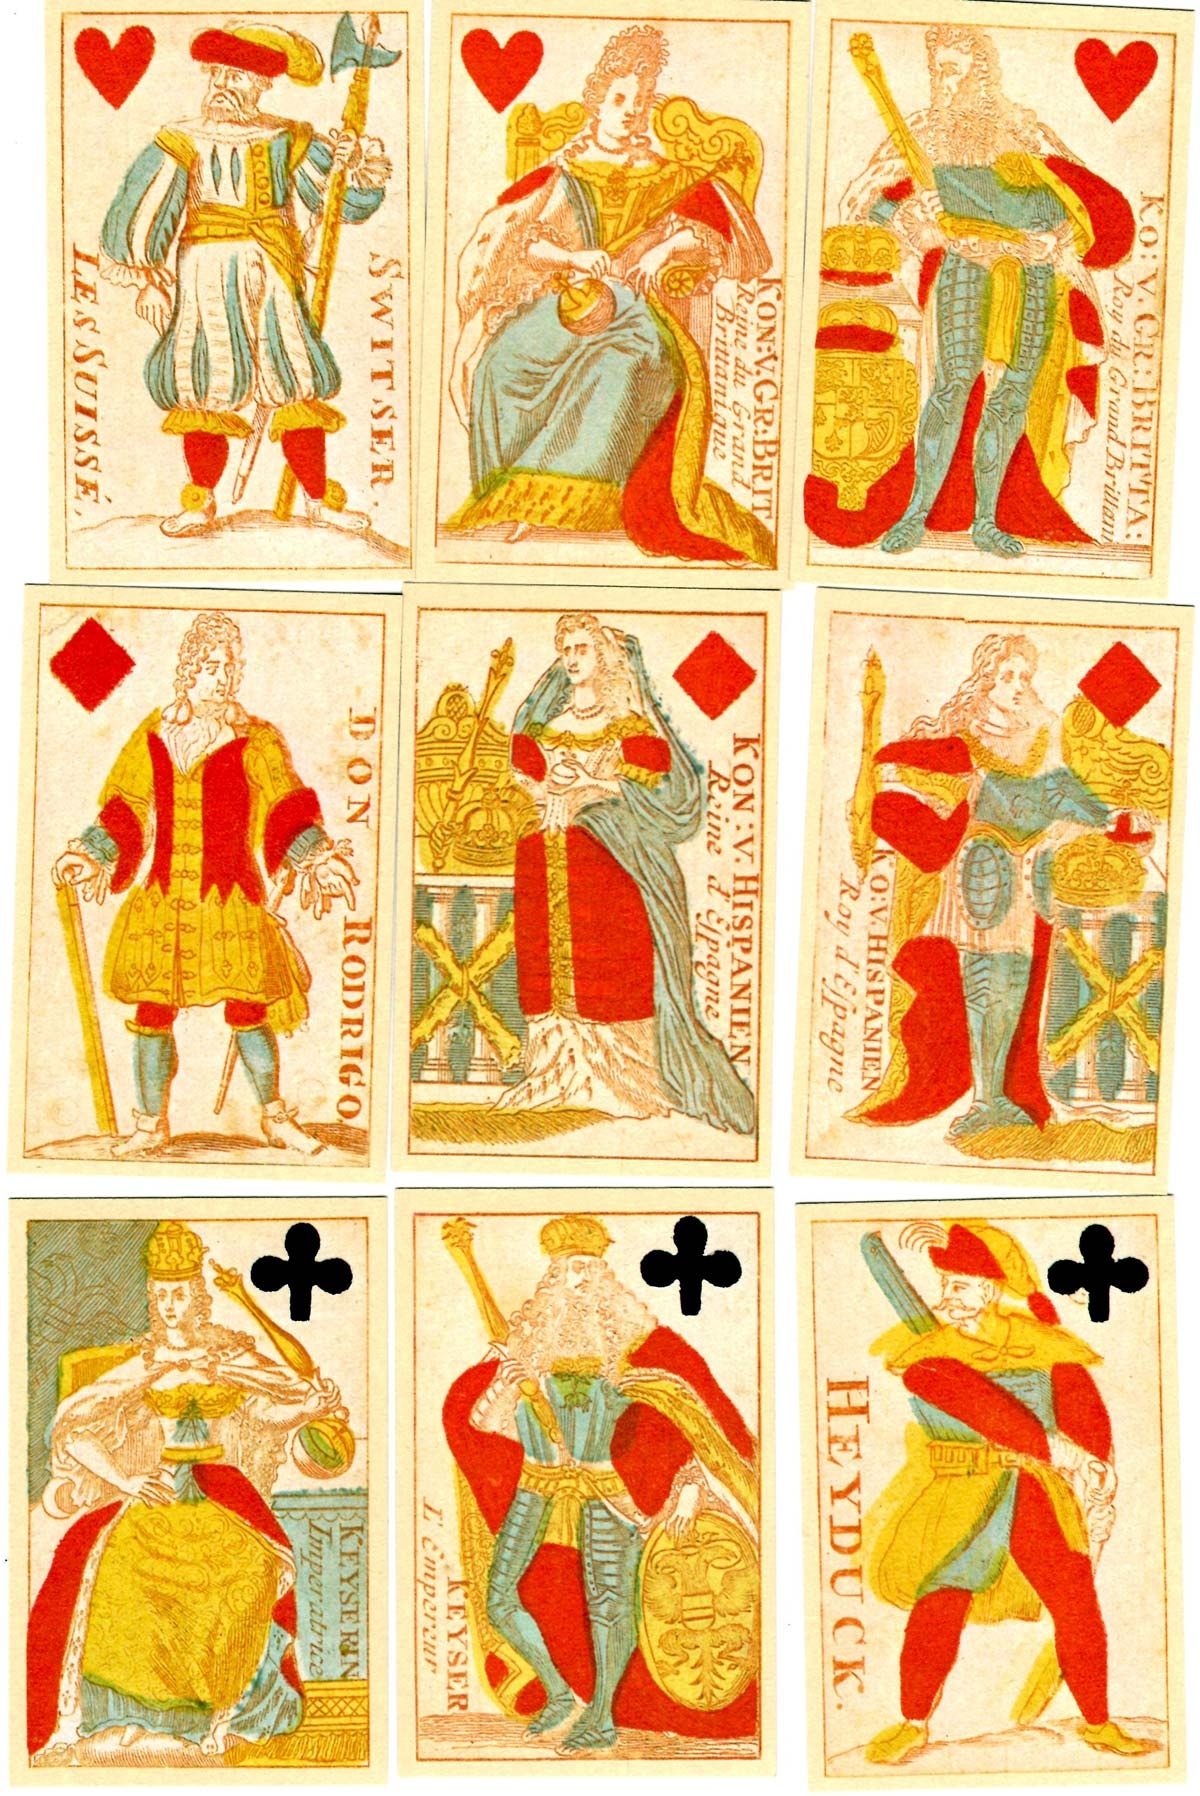 facsimile edition of cards first published by Carel de Wagenaer, Amsterdam in c.1698